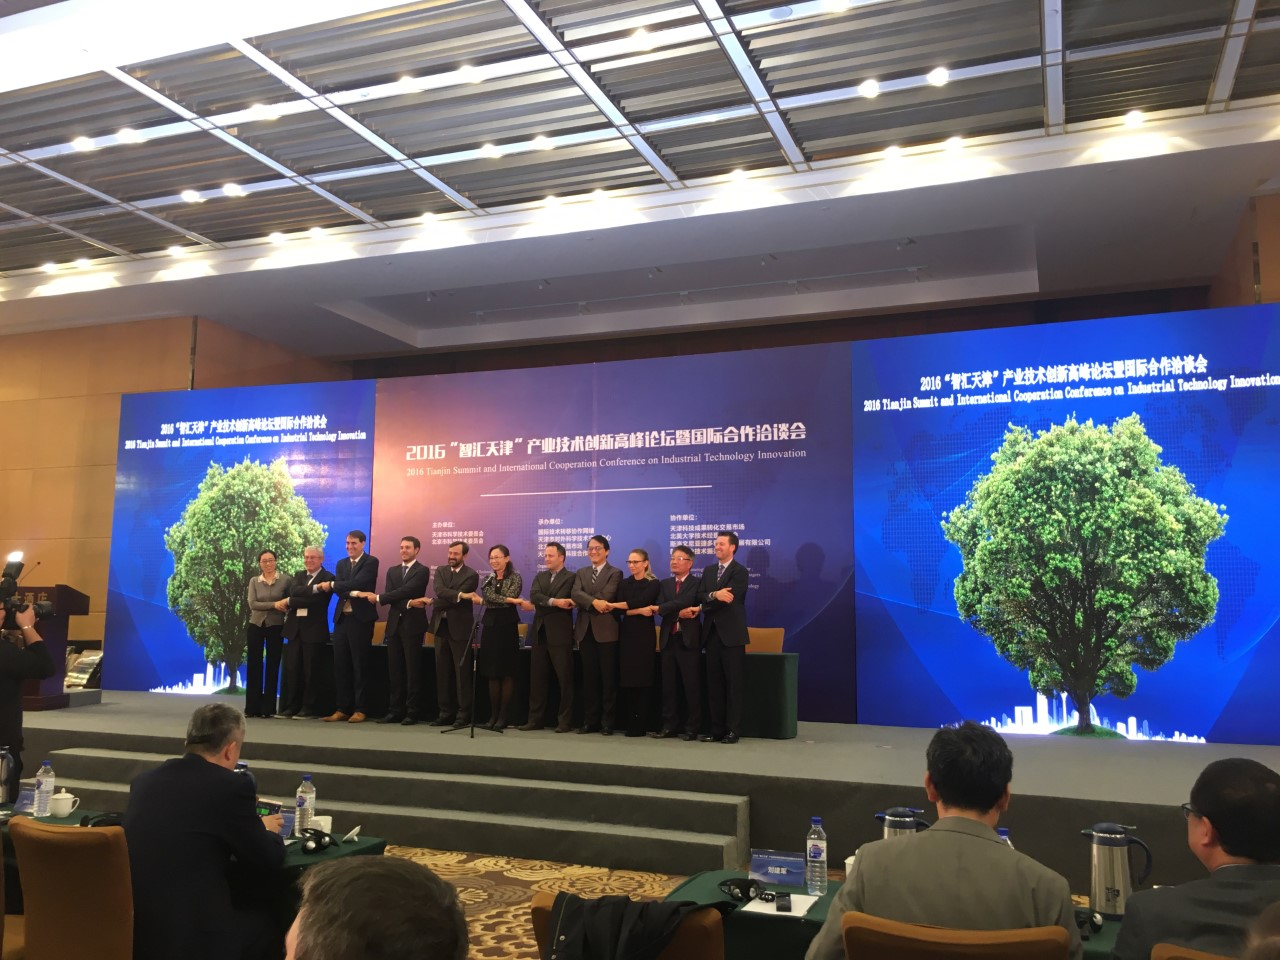 thumbnail BRICSTTN-Ninel-Meeting 1